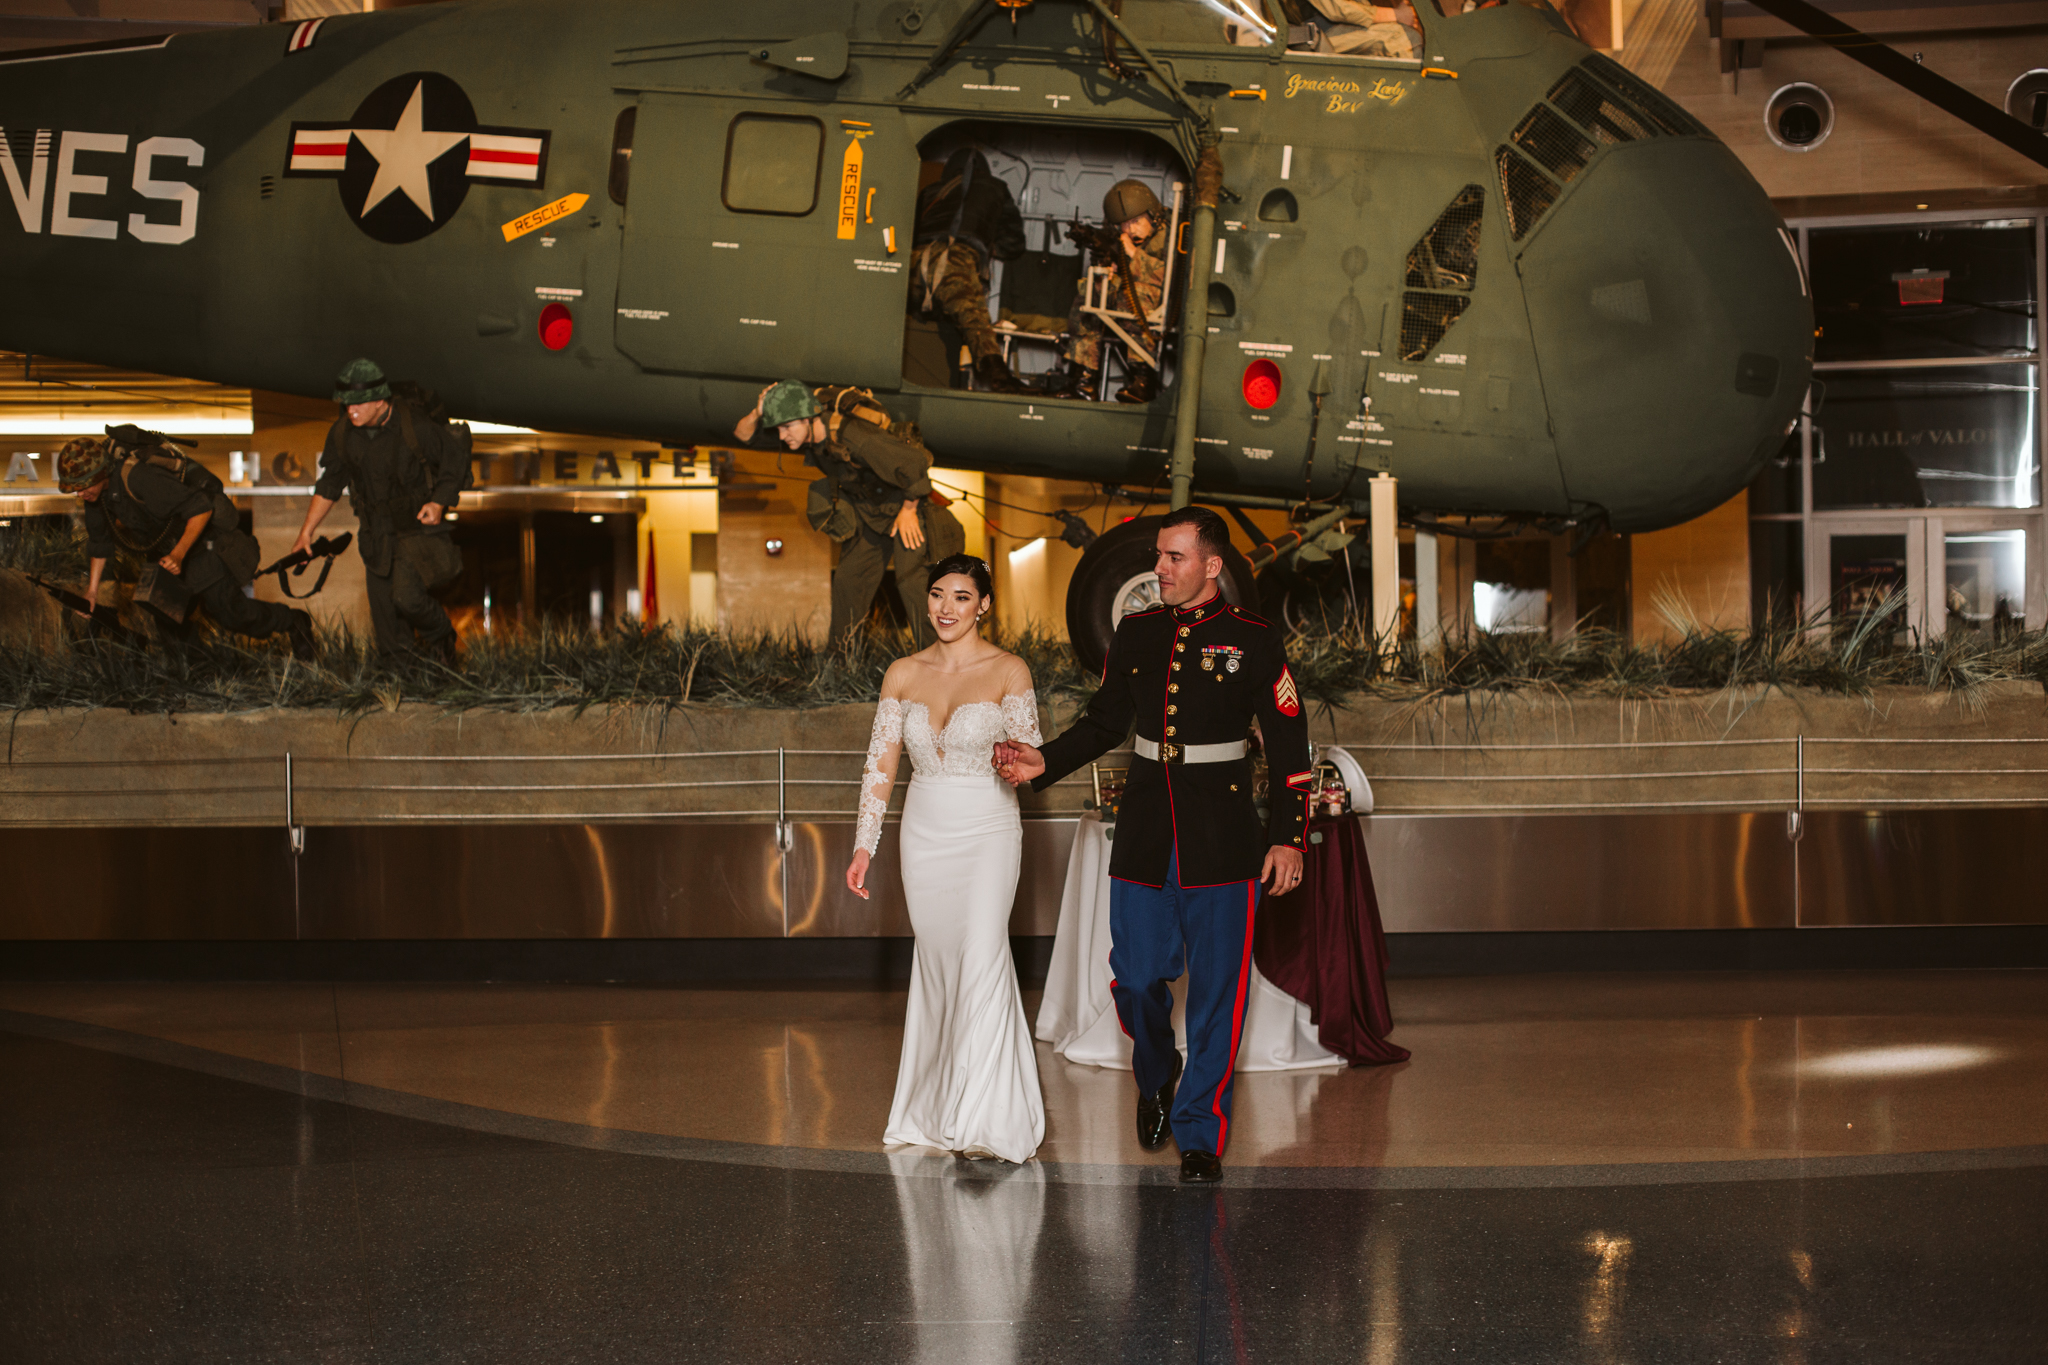 solinsky_wedding_national_museum_of_marine_corp-33.jpg